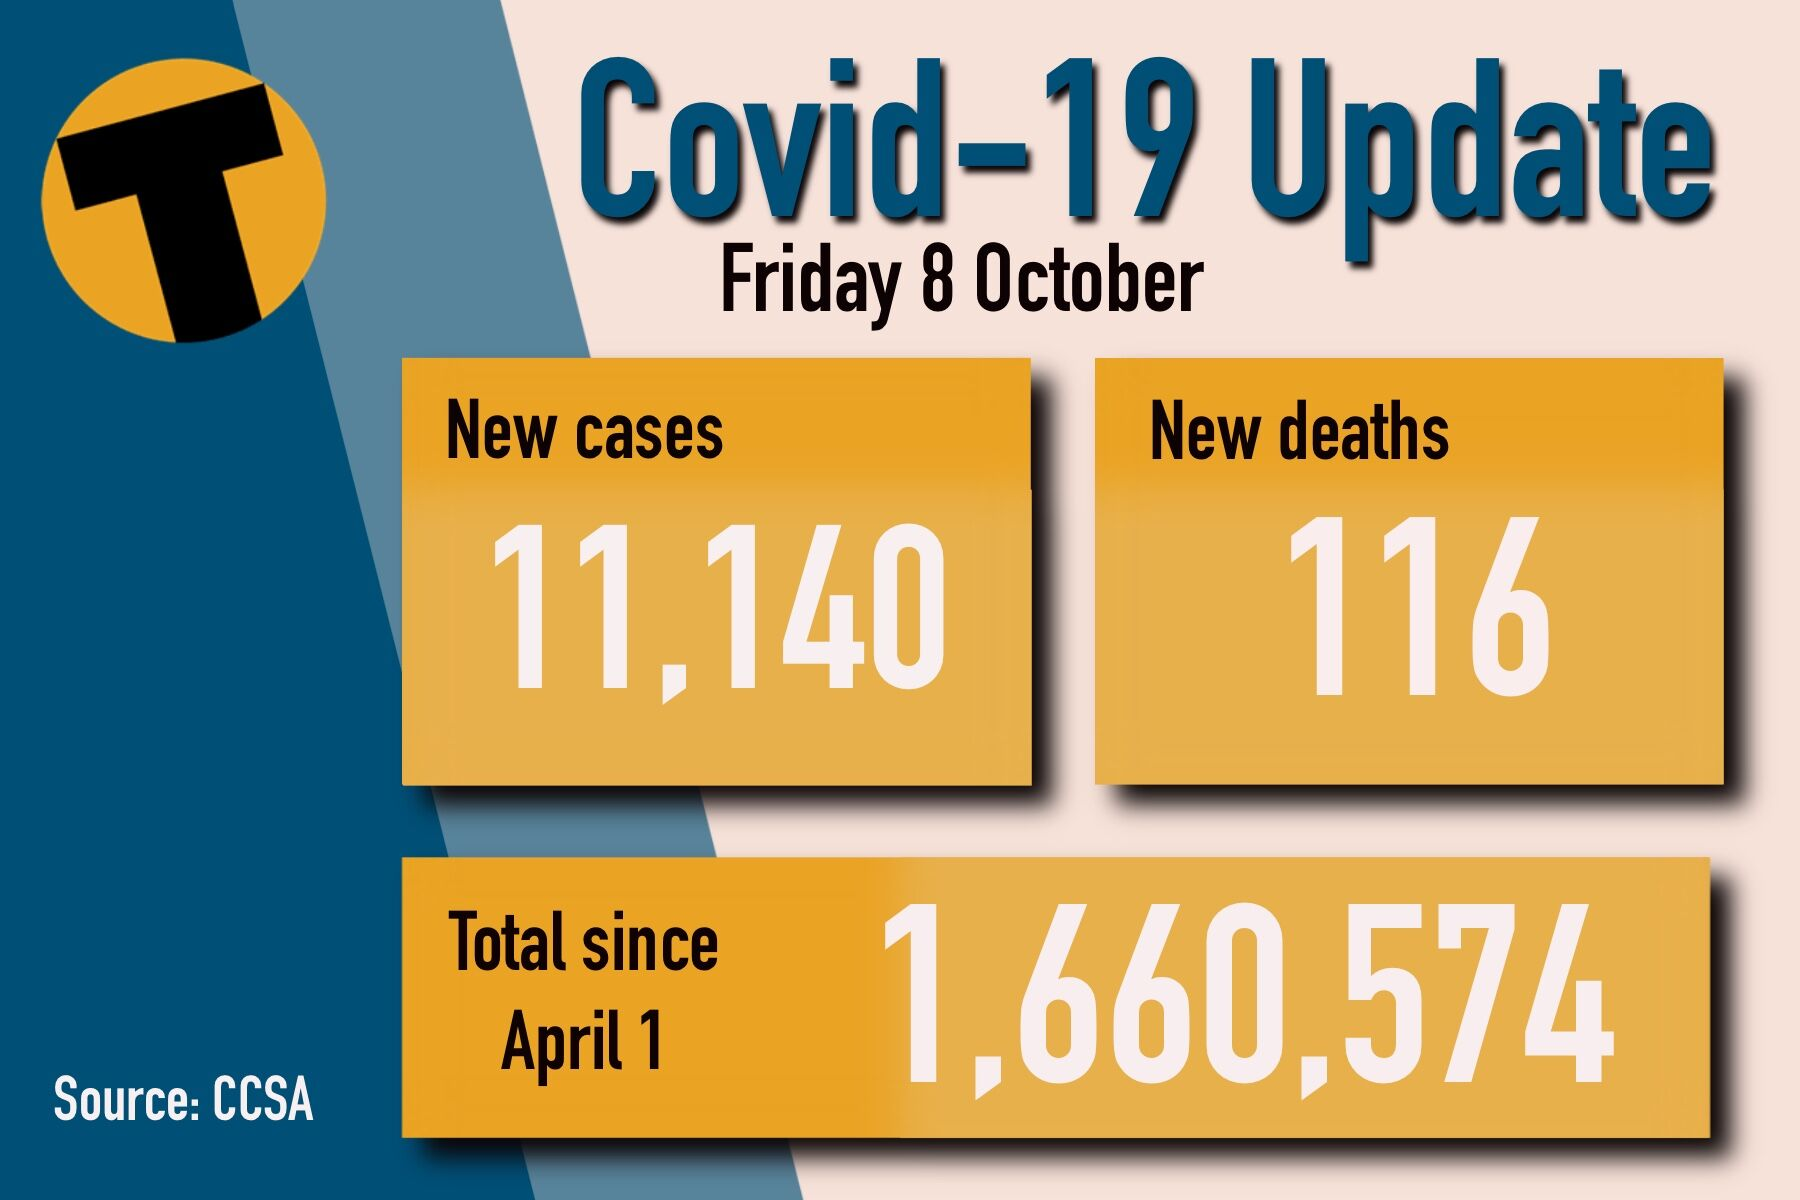 Friday Covid Update: 11,140 new cases and 116 deaths   News by Thaiger